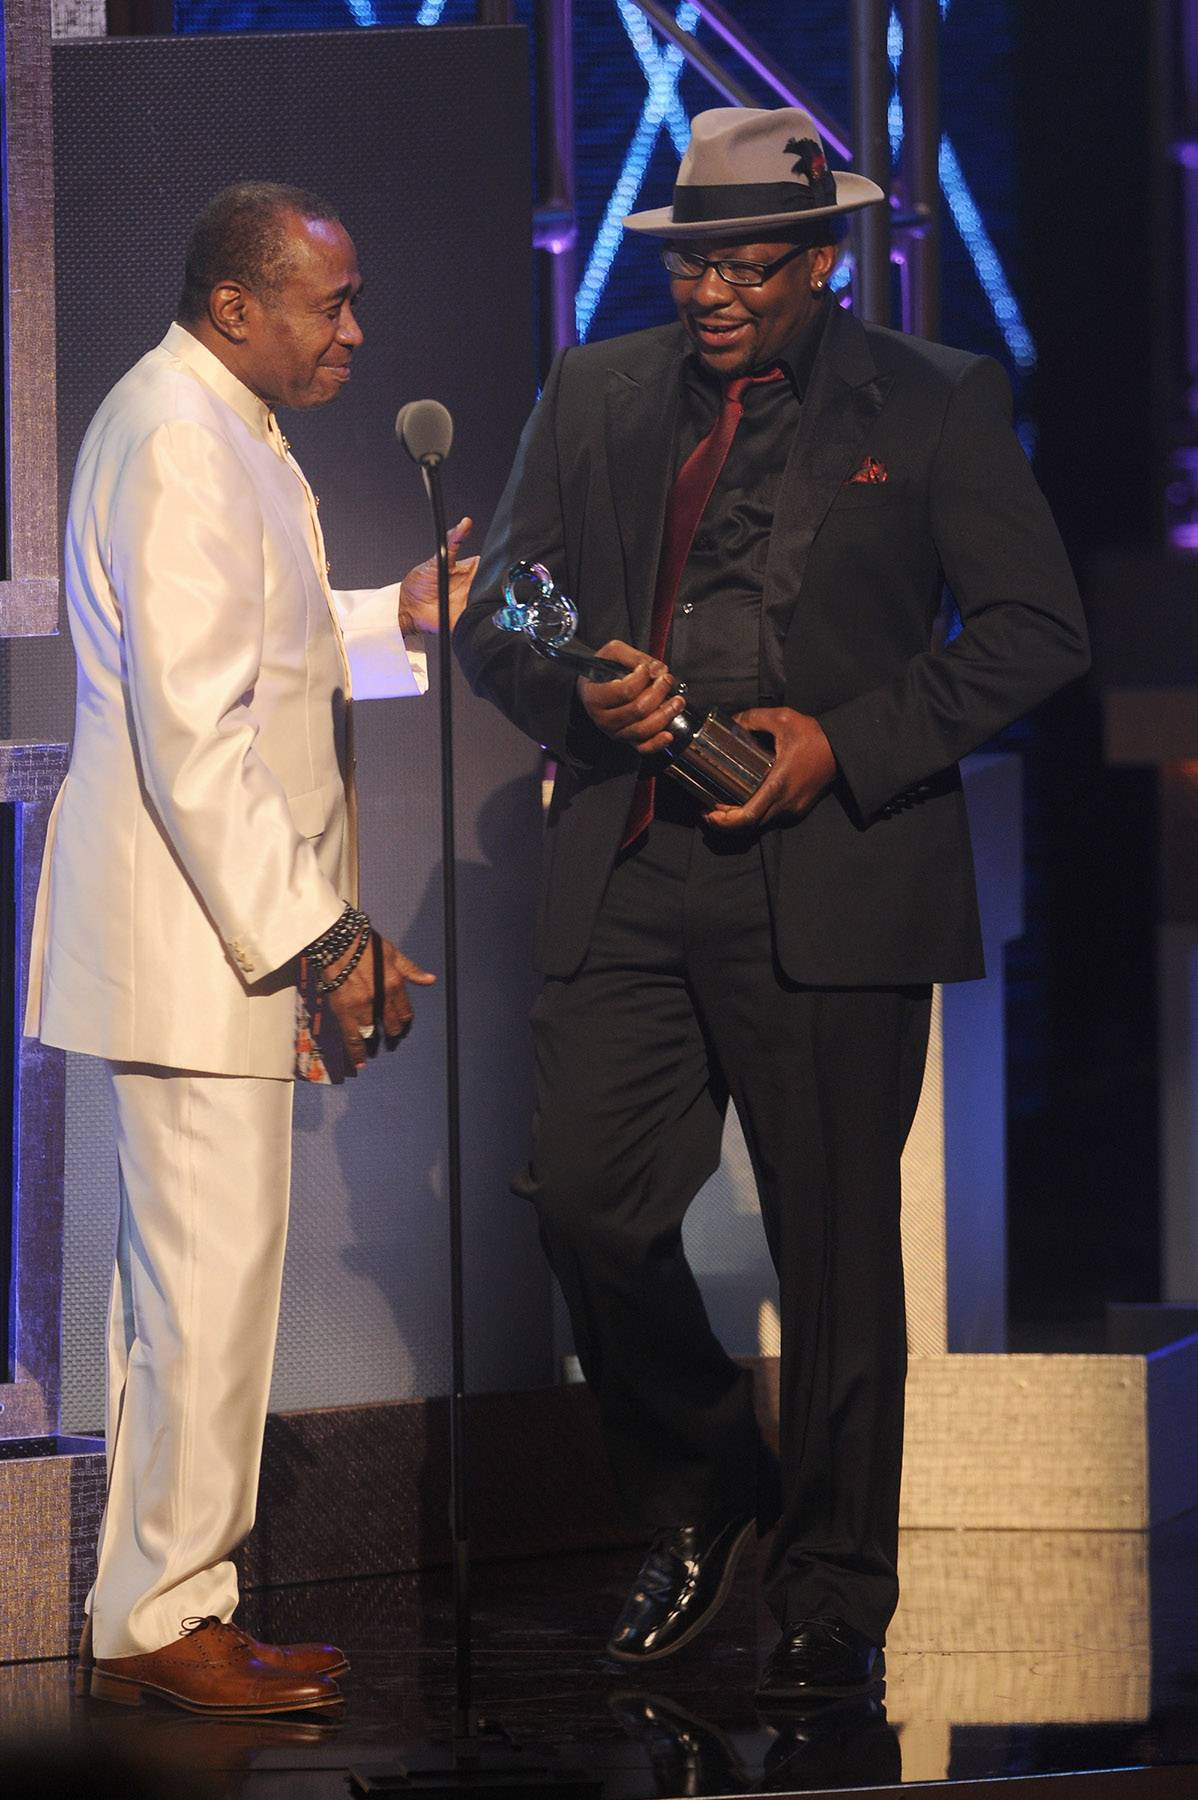 Inspirational Moments  - Actor Ben Vereen and New Edition frontman Bobby Brown present Usher with the award for Musical Arts.(Photo:Brad Barket/BET/Getty Images for BET)